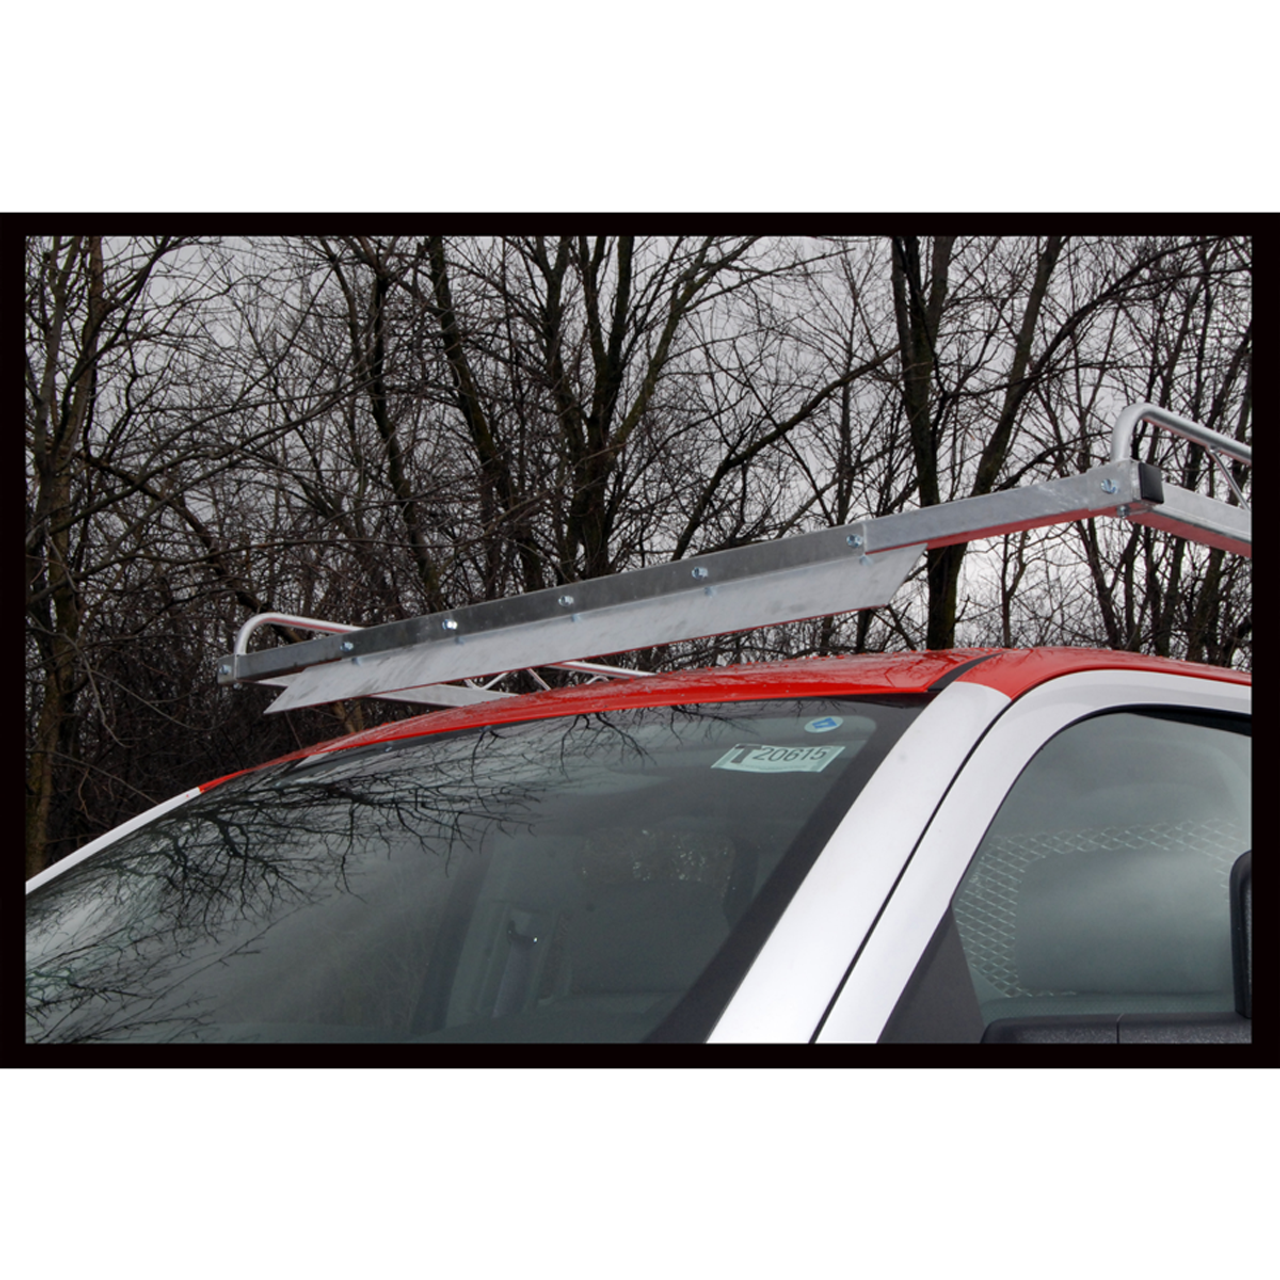 Topper 501040 Truck Rack Accessory Wind Deflector Industrial Ladder Supply Co Inc